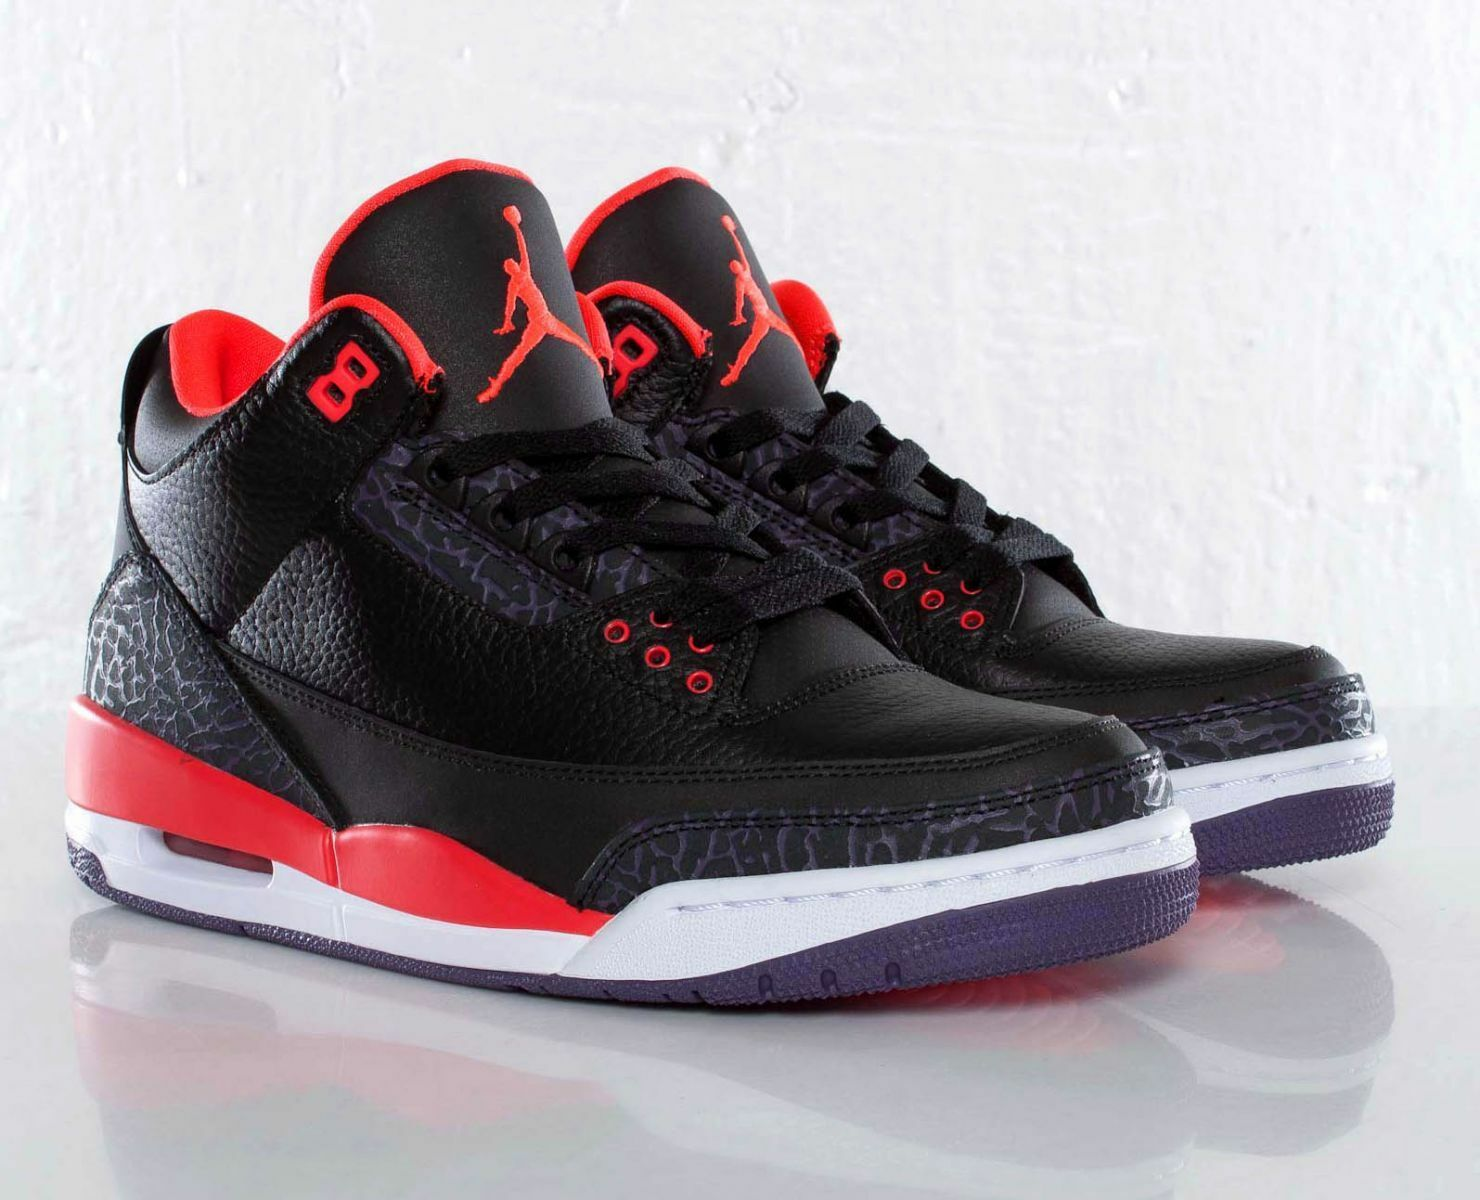 Nike air jordan 3 iii retrò 1 crimson dimensioni 11,5.136064-005 1 retrò 2 3 4 5 6